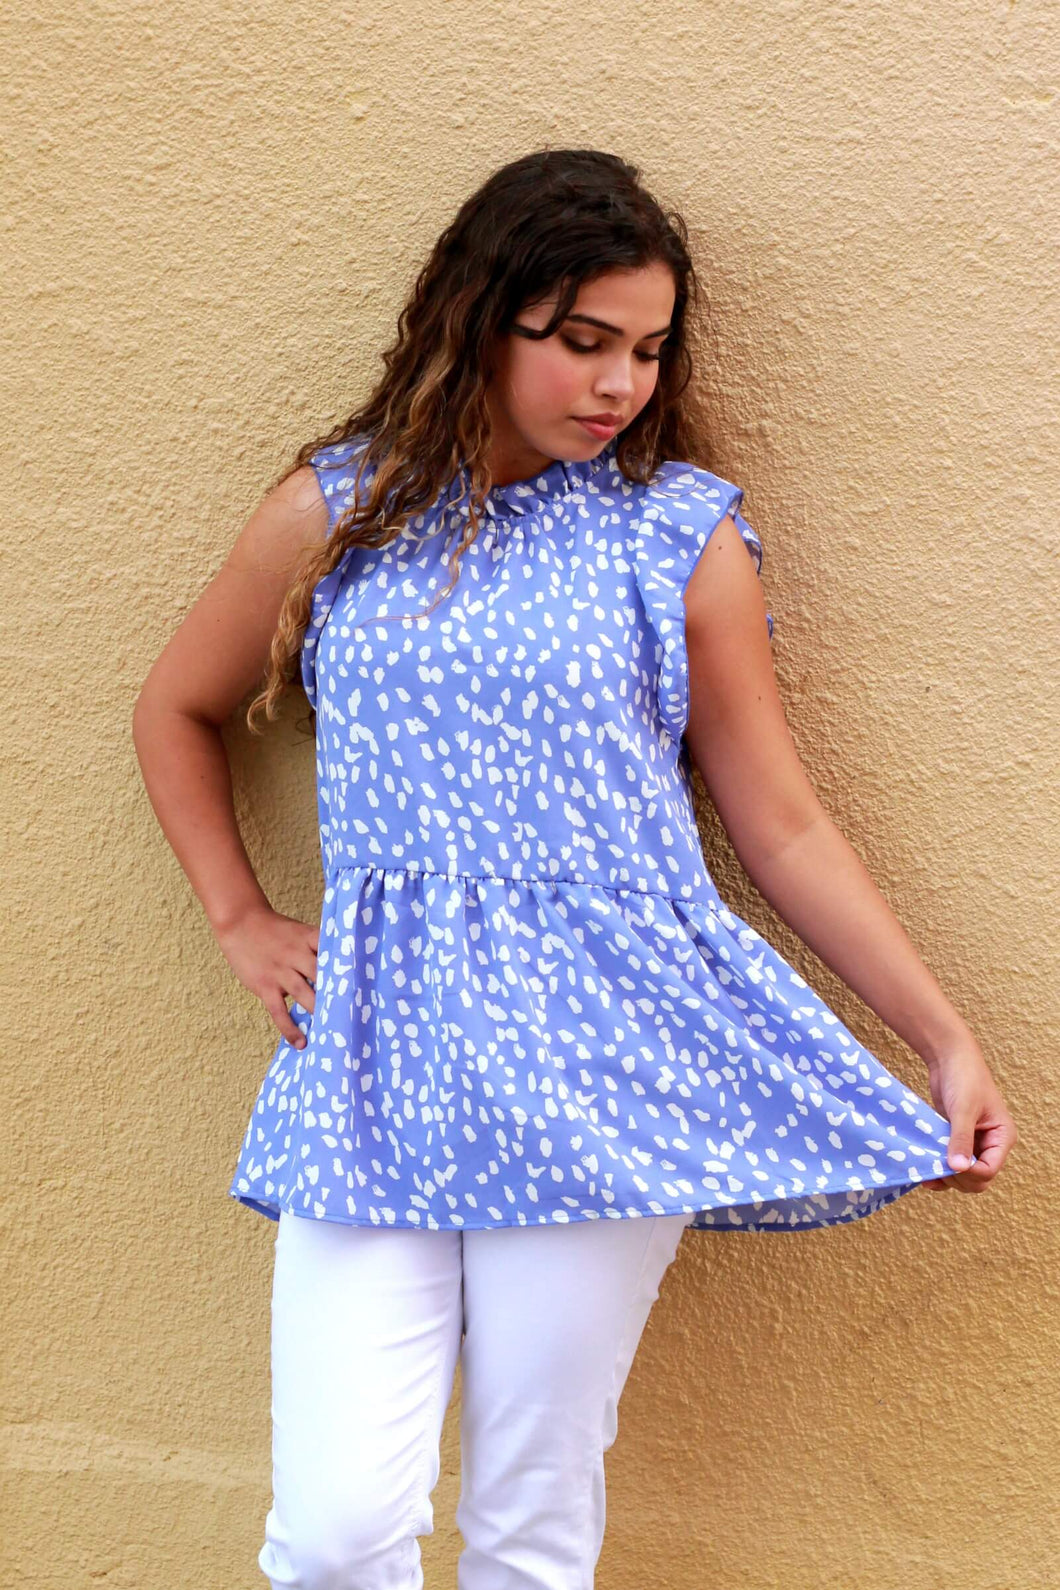 Entro Light Blue Cheetah Print Top - June Adel